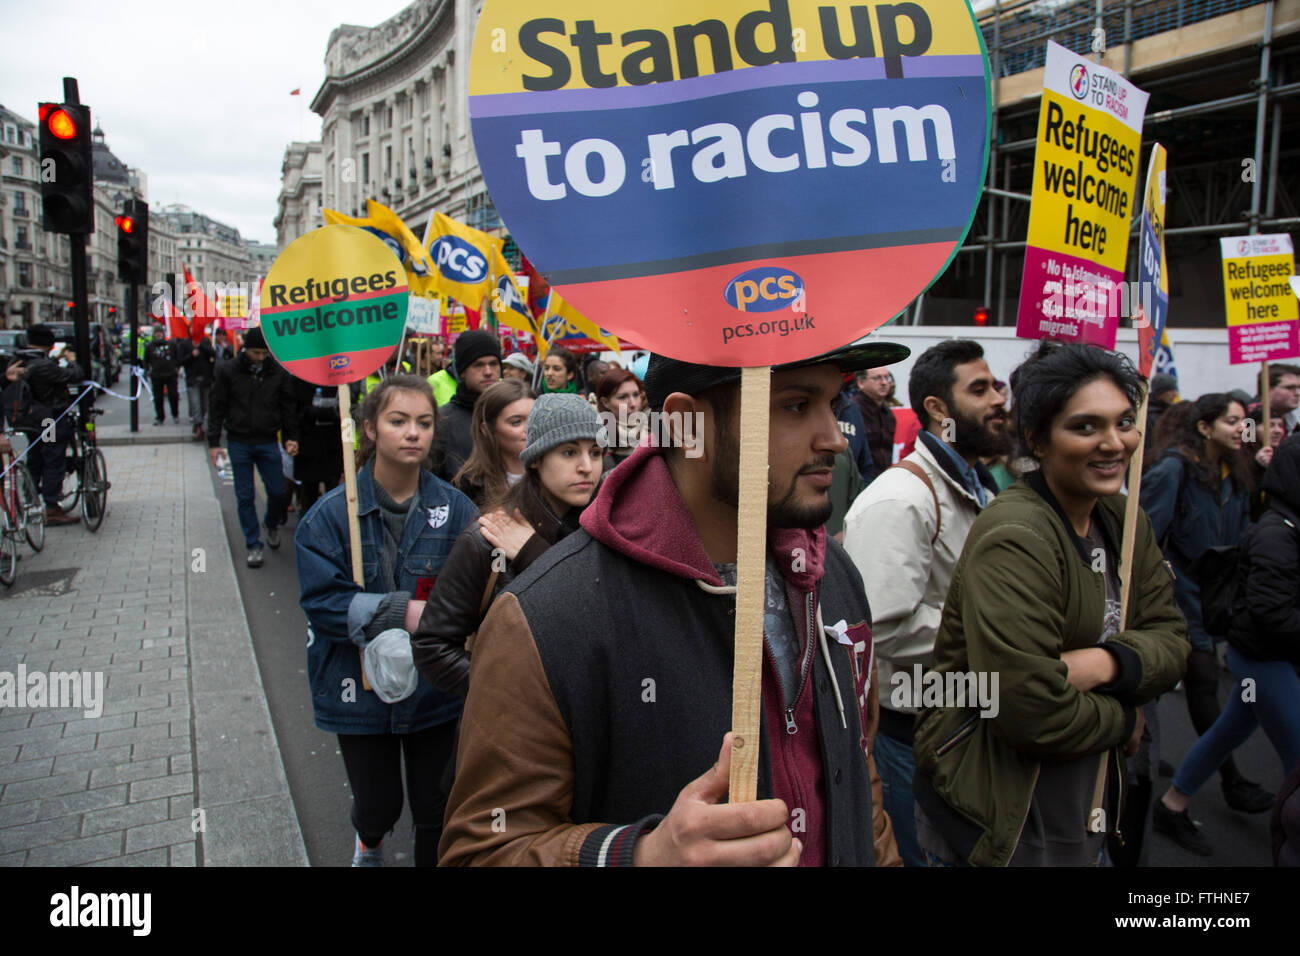 Demonstrators at Anti-racism Day demonstration led by Stand Up To Racism on 19th March 2016 in London, United Kingdom. - Stock Image